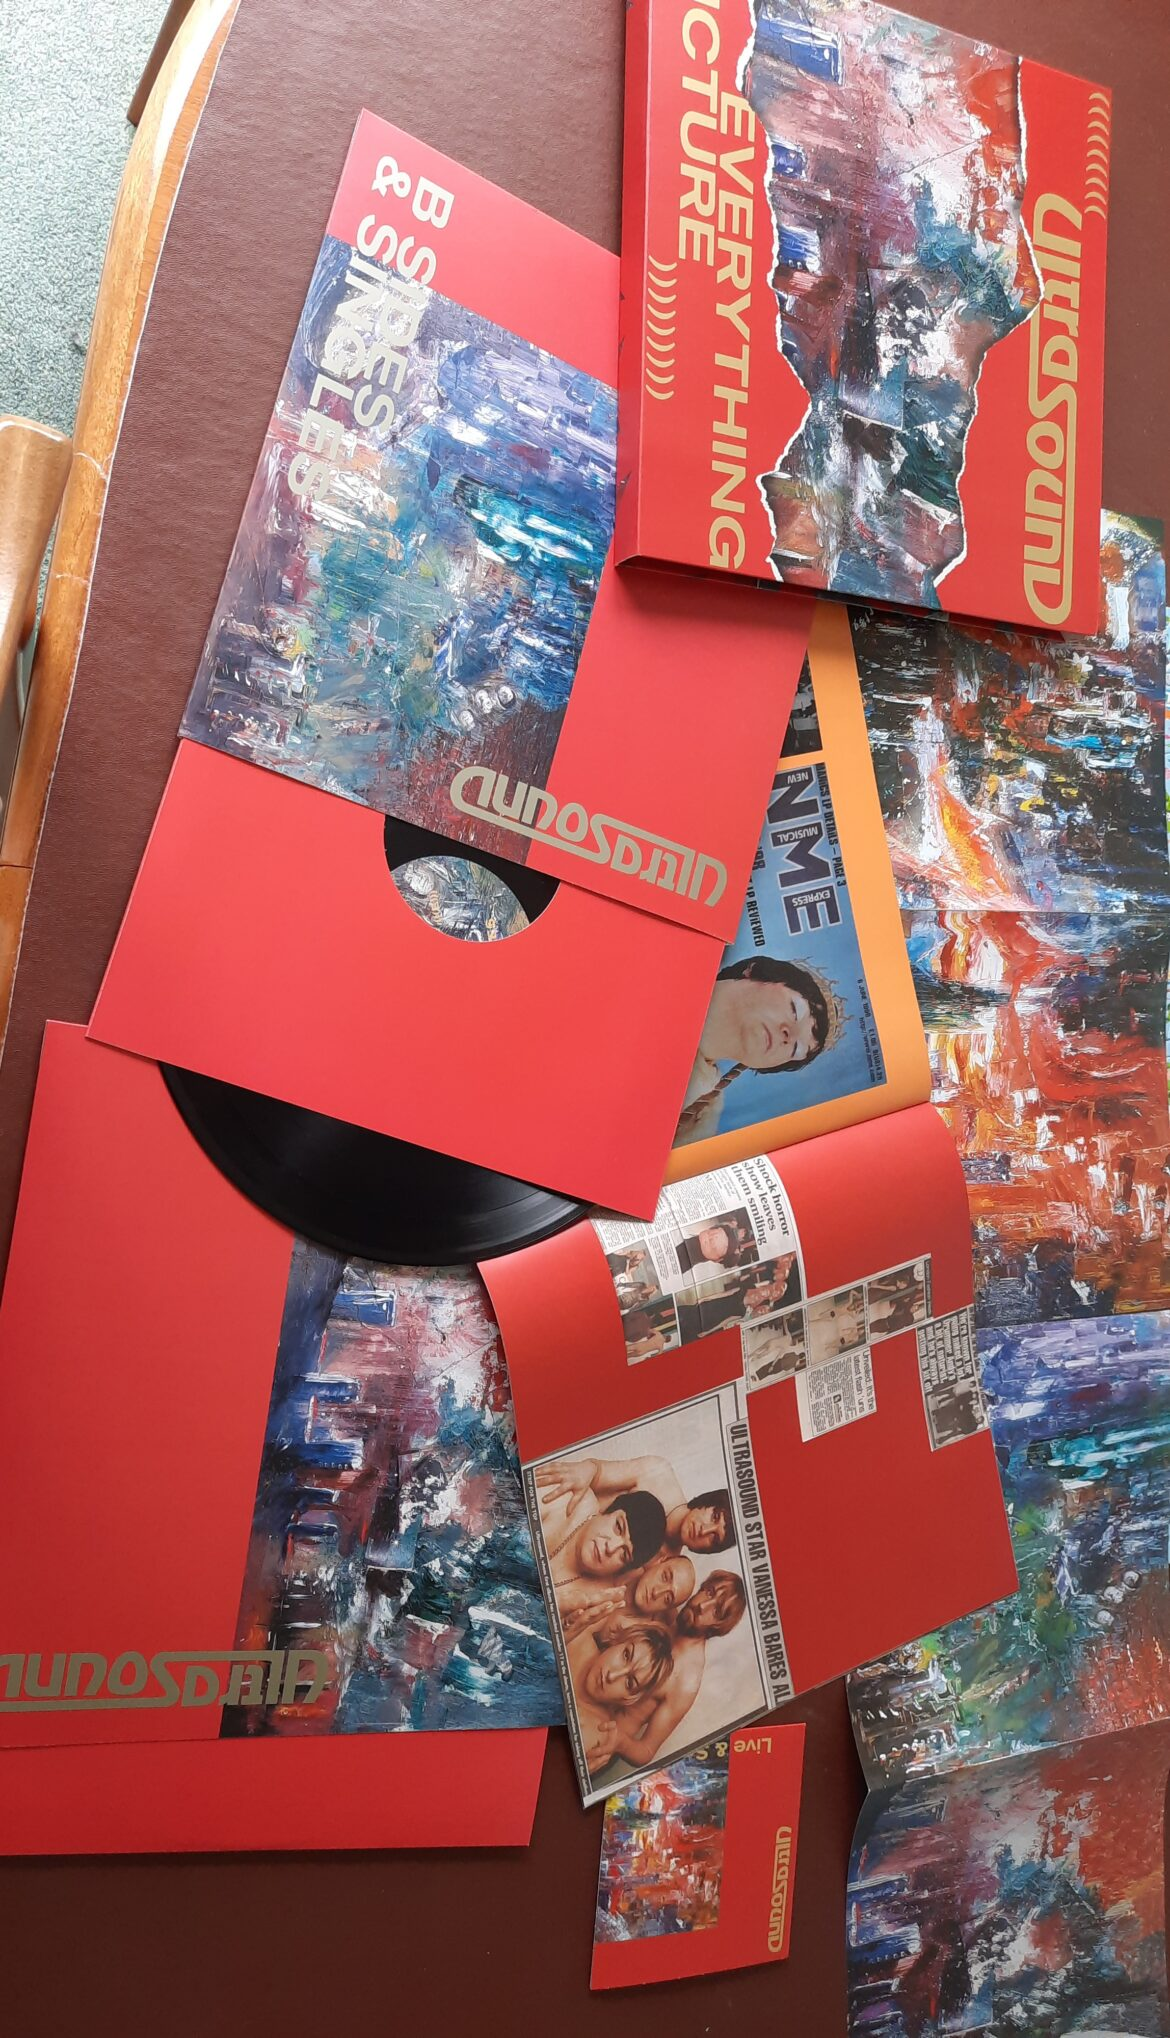 Ultrasound – Everything Picture (Vinyl Re-issue / Boxset, One Little Independent)